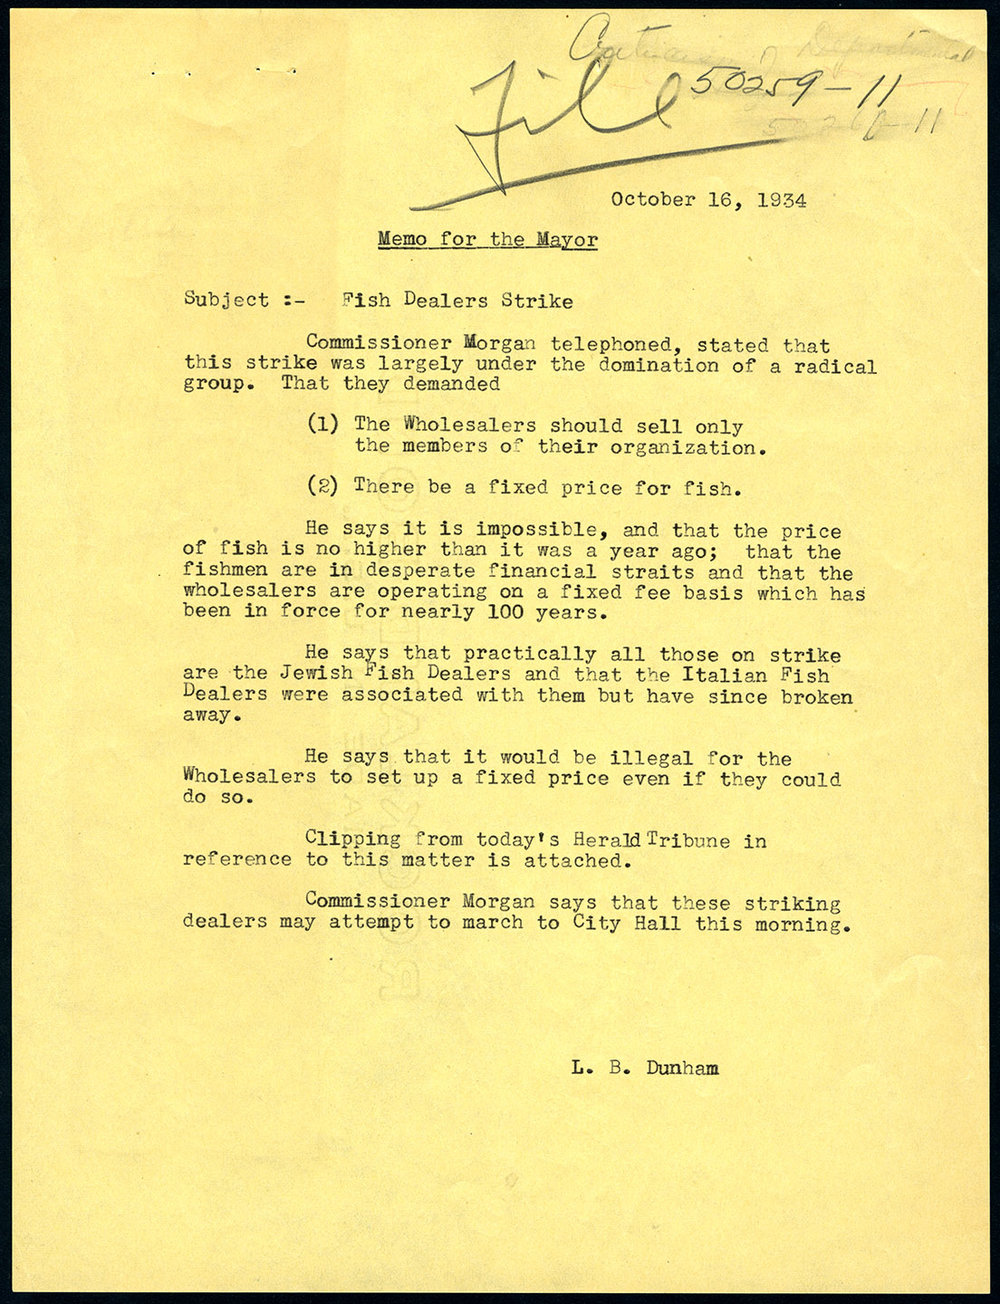 Memo to Mayor LaGuardia from secretary L.B. Dunham, Oct. 16, 1934. Mayor LaGuardia Collection, NYC Municipal Archives.